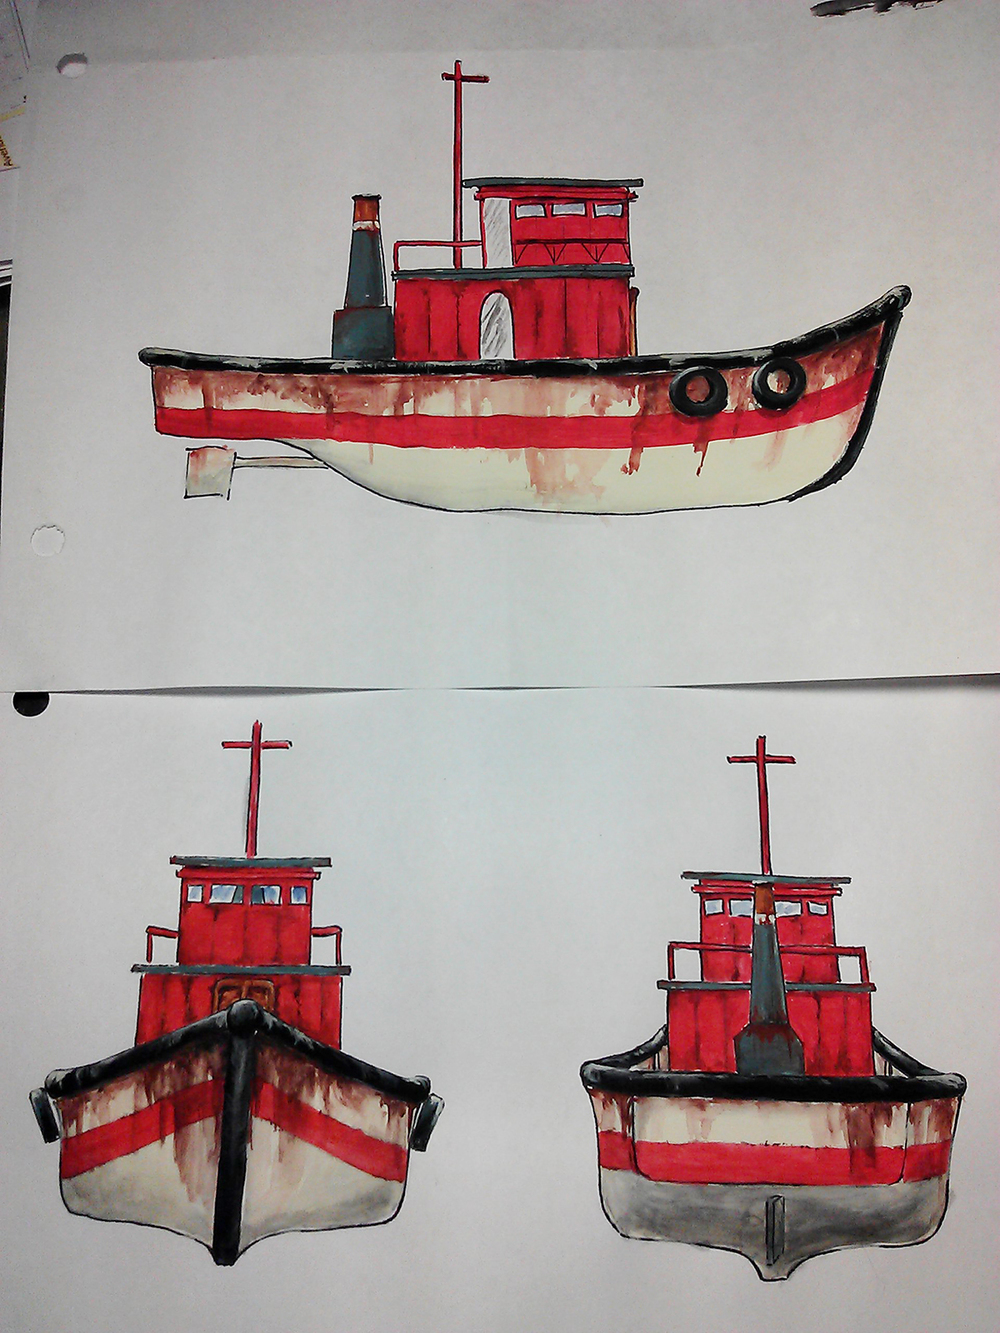 Sketches of the S.S. Bean